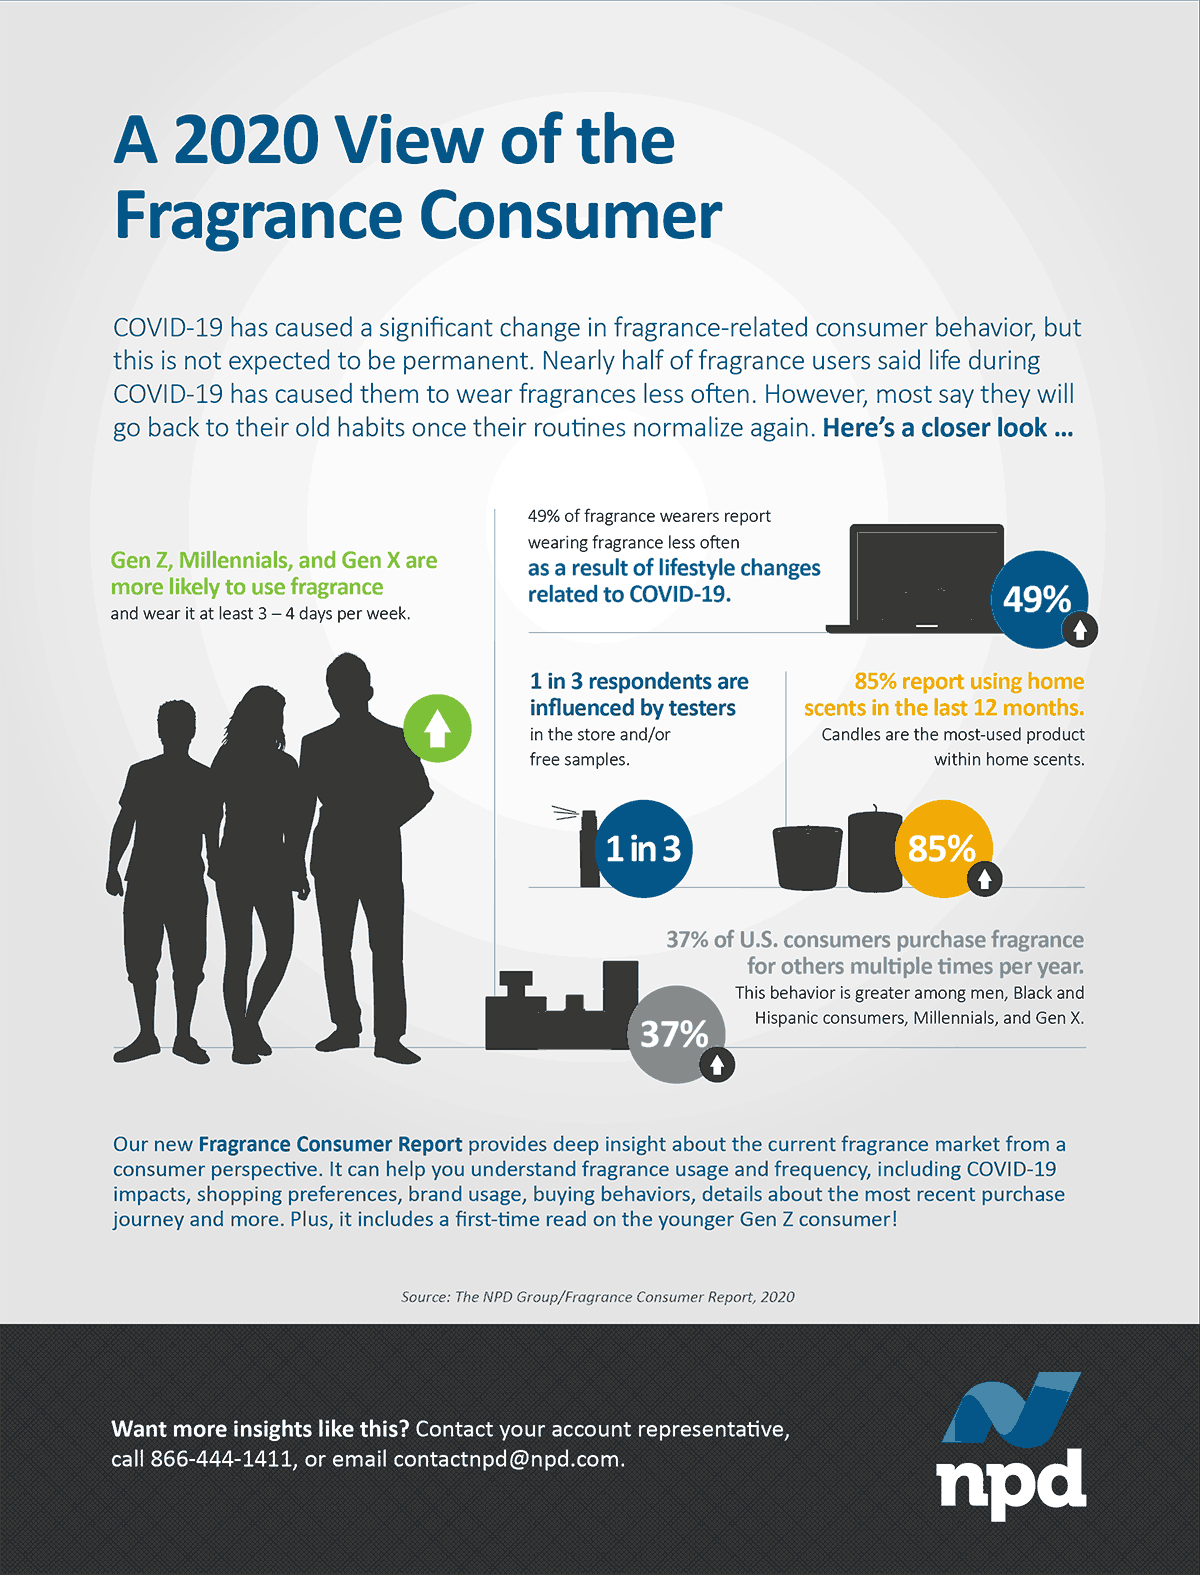 COVID-19 has caused a significant change in fragrance-related consumer behavior, but this is not expected to be permanent.